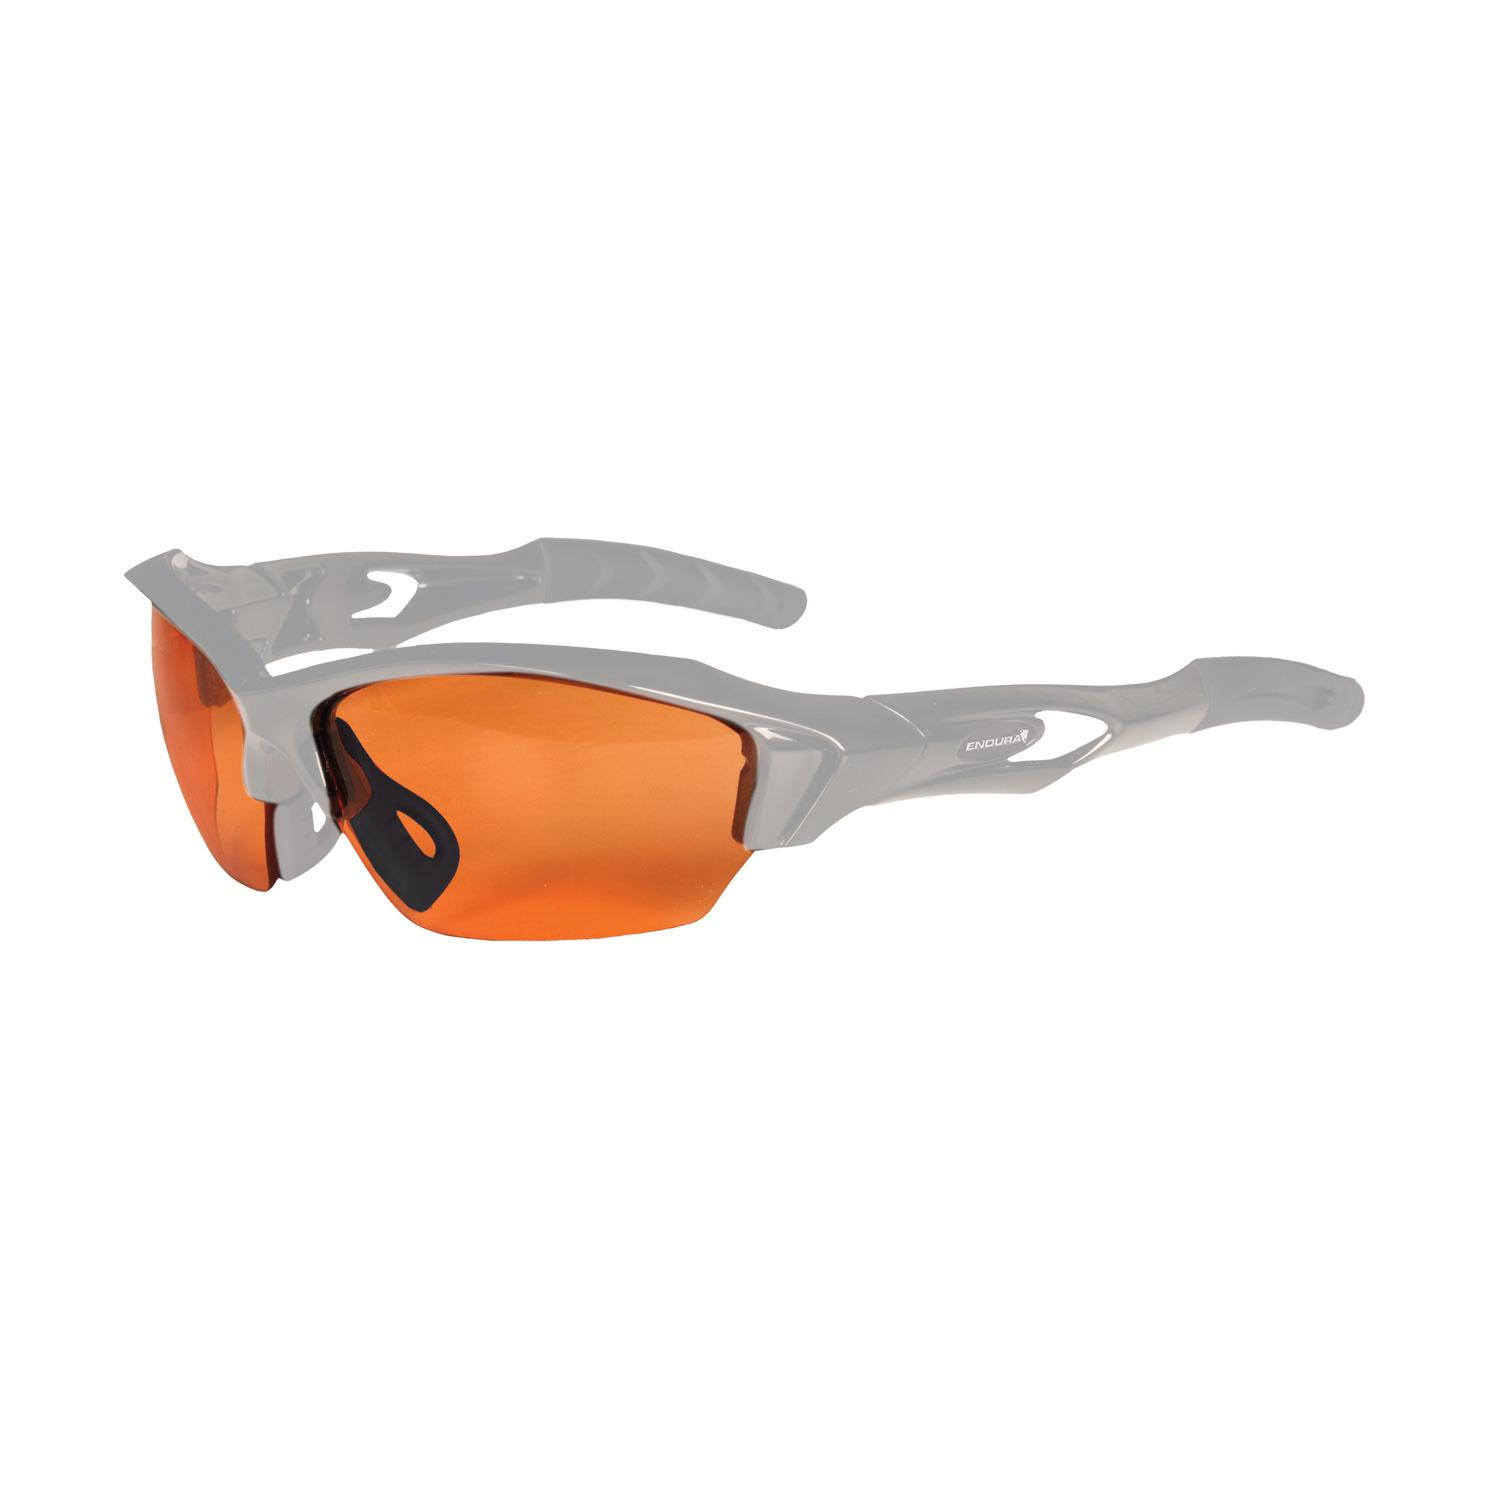 guppy-glasses-3-sets-of-lenses-clear-persimmon-and-smoke-